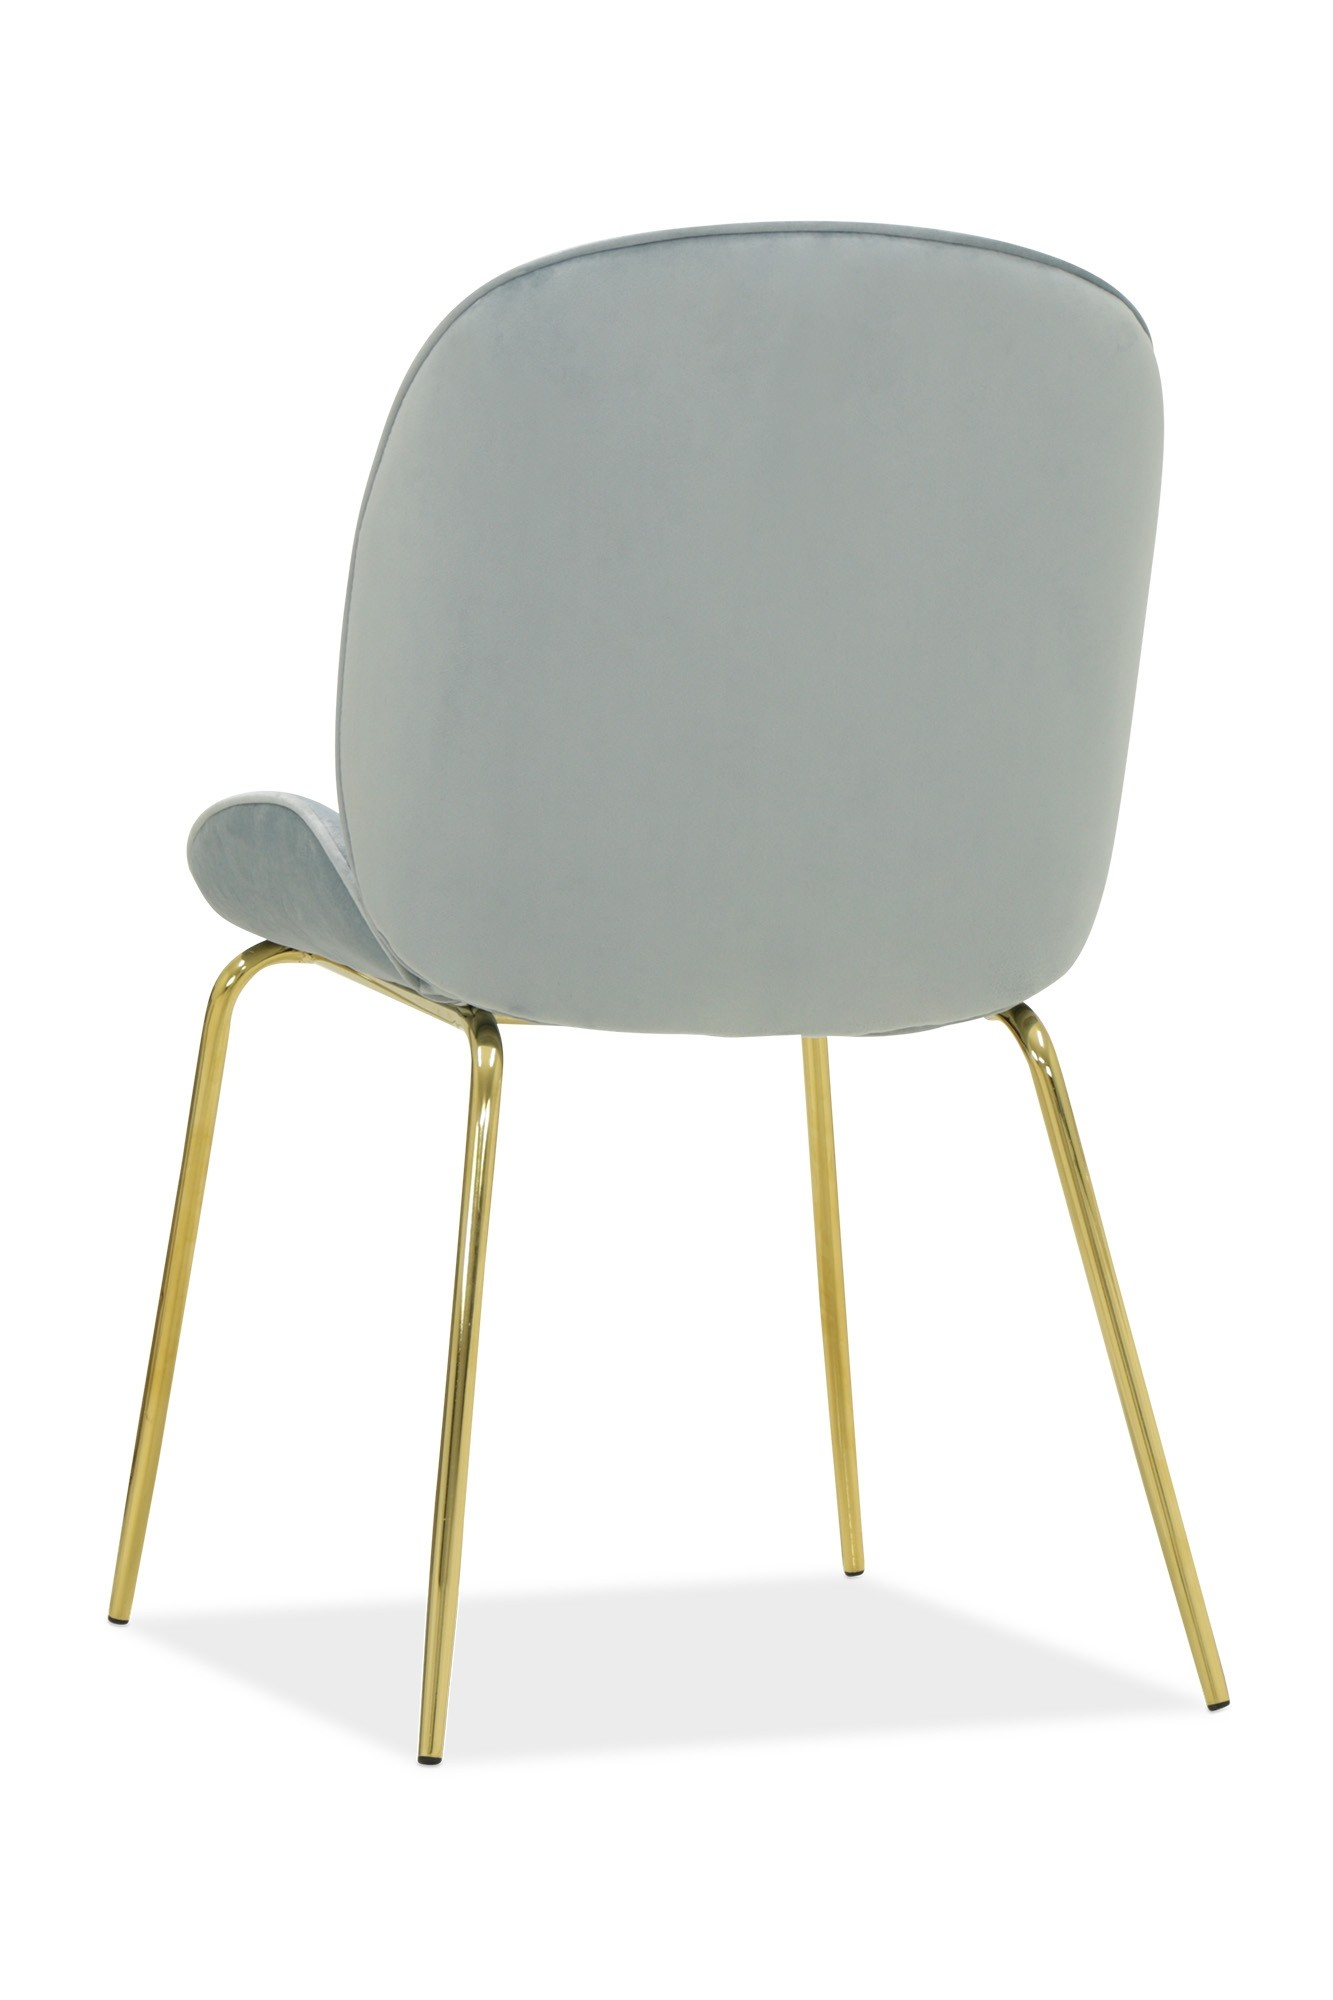 Beetle Chair Replica With Gold Legs Grey Dining Chairs